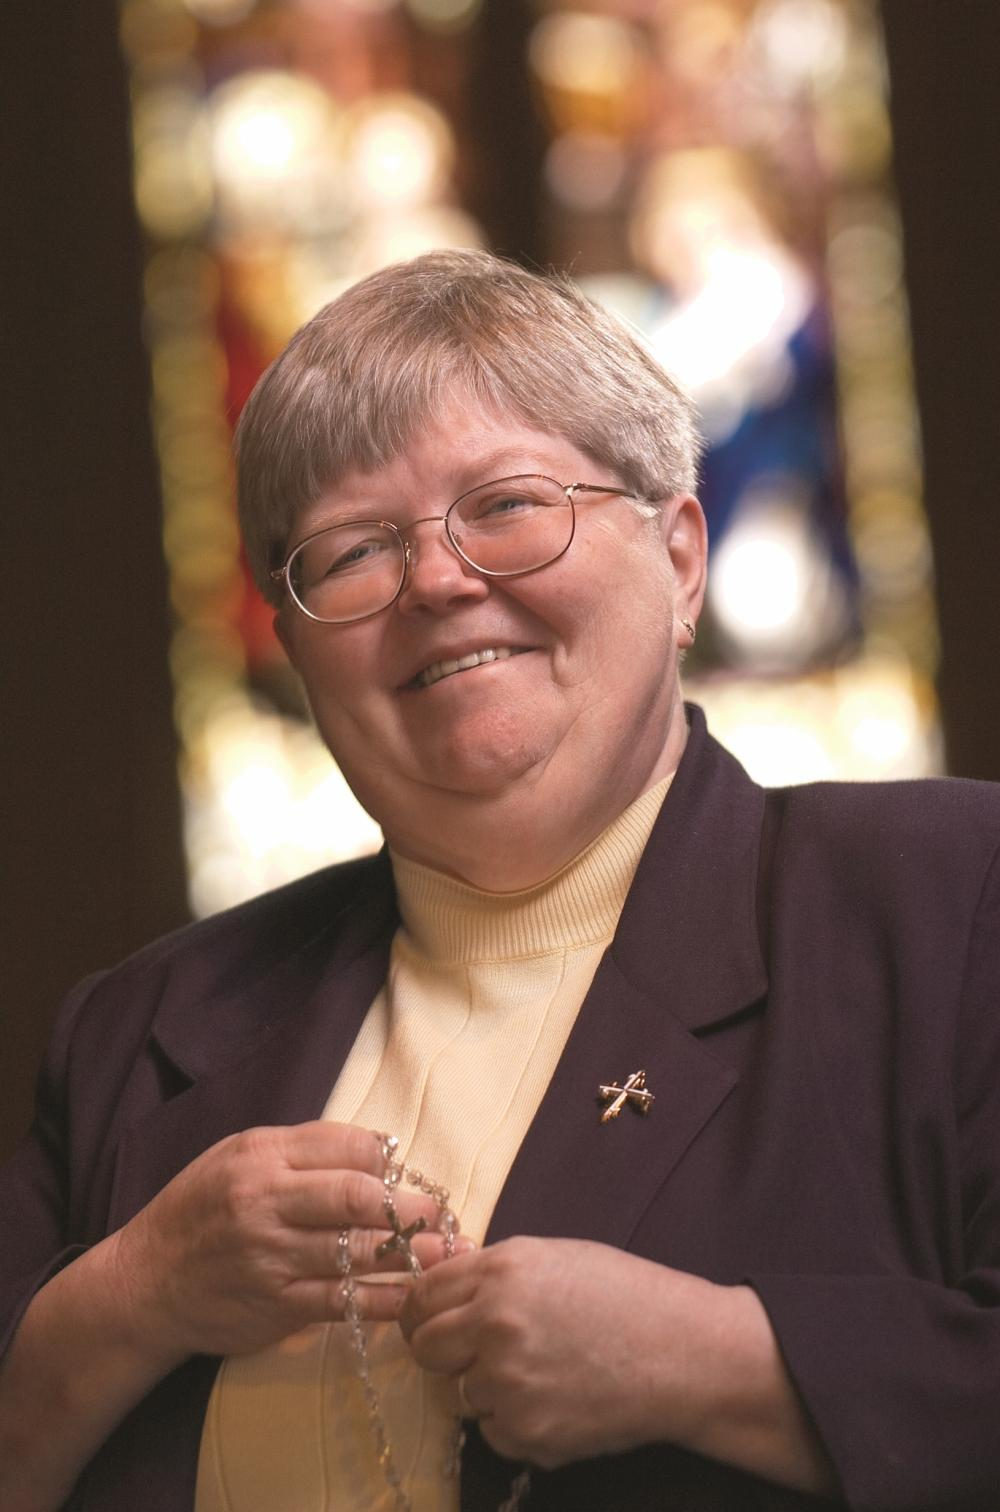 Vocations Part 4: God's quiet call to the consecrated life. How Sr. Carla responded.